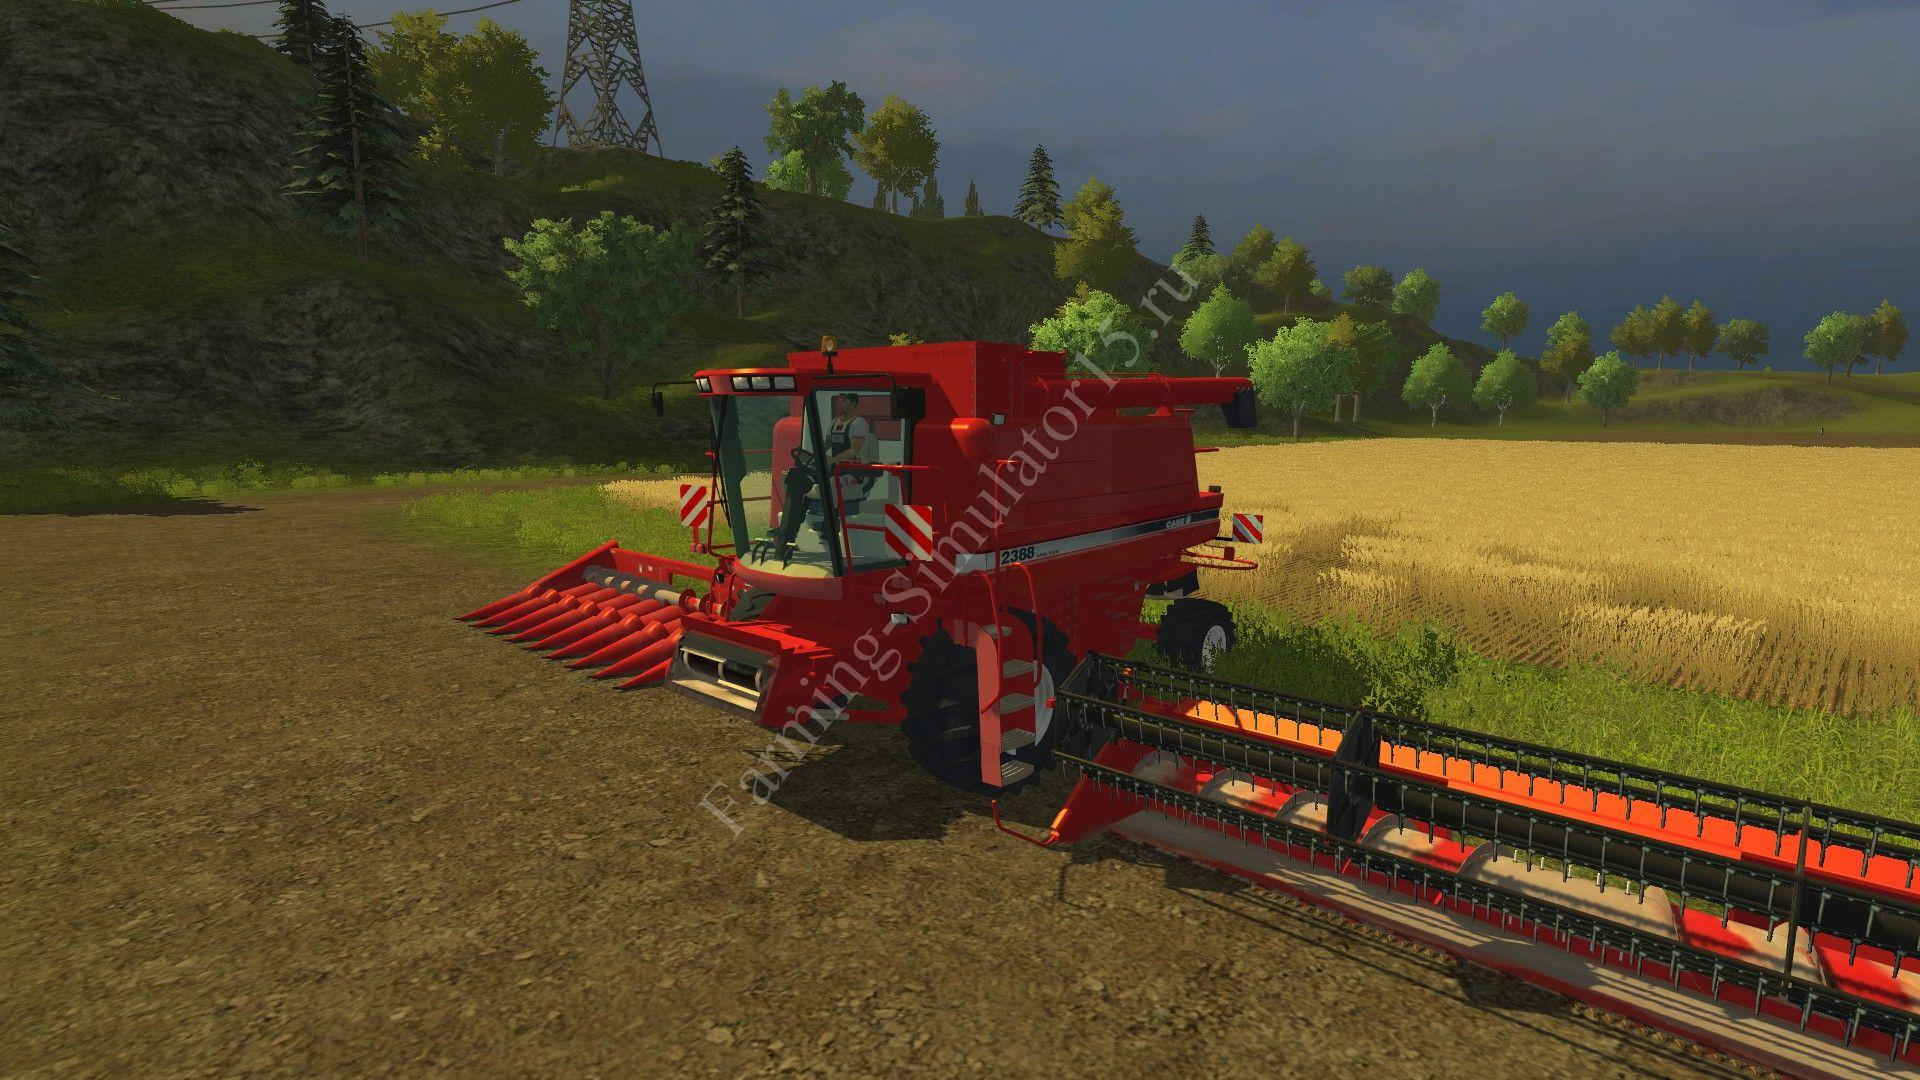 Мод комбайна Case IH 2388 v 2.0 More Realistic Farming Simulator 2013, Farming Simulator 13